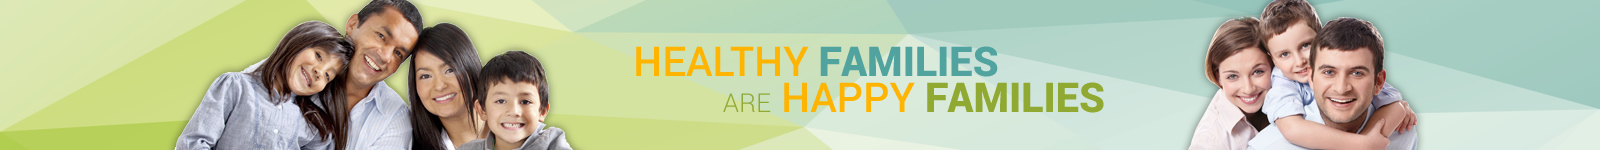 Healthy Familys are Happy Families